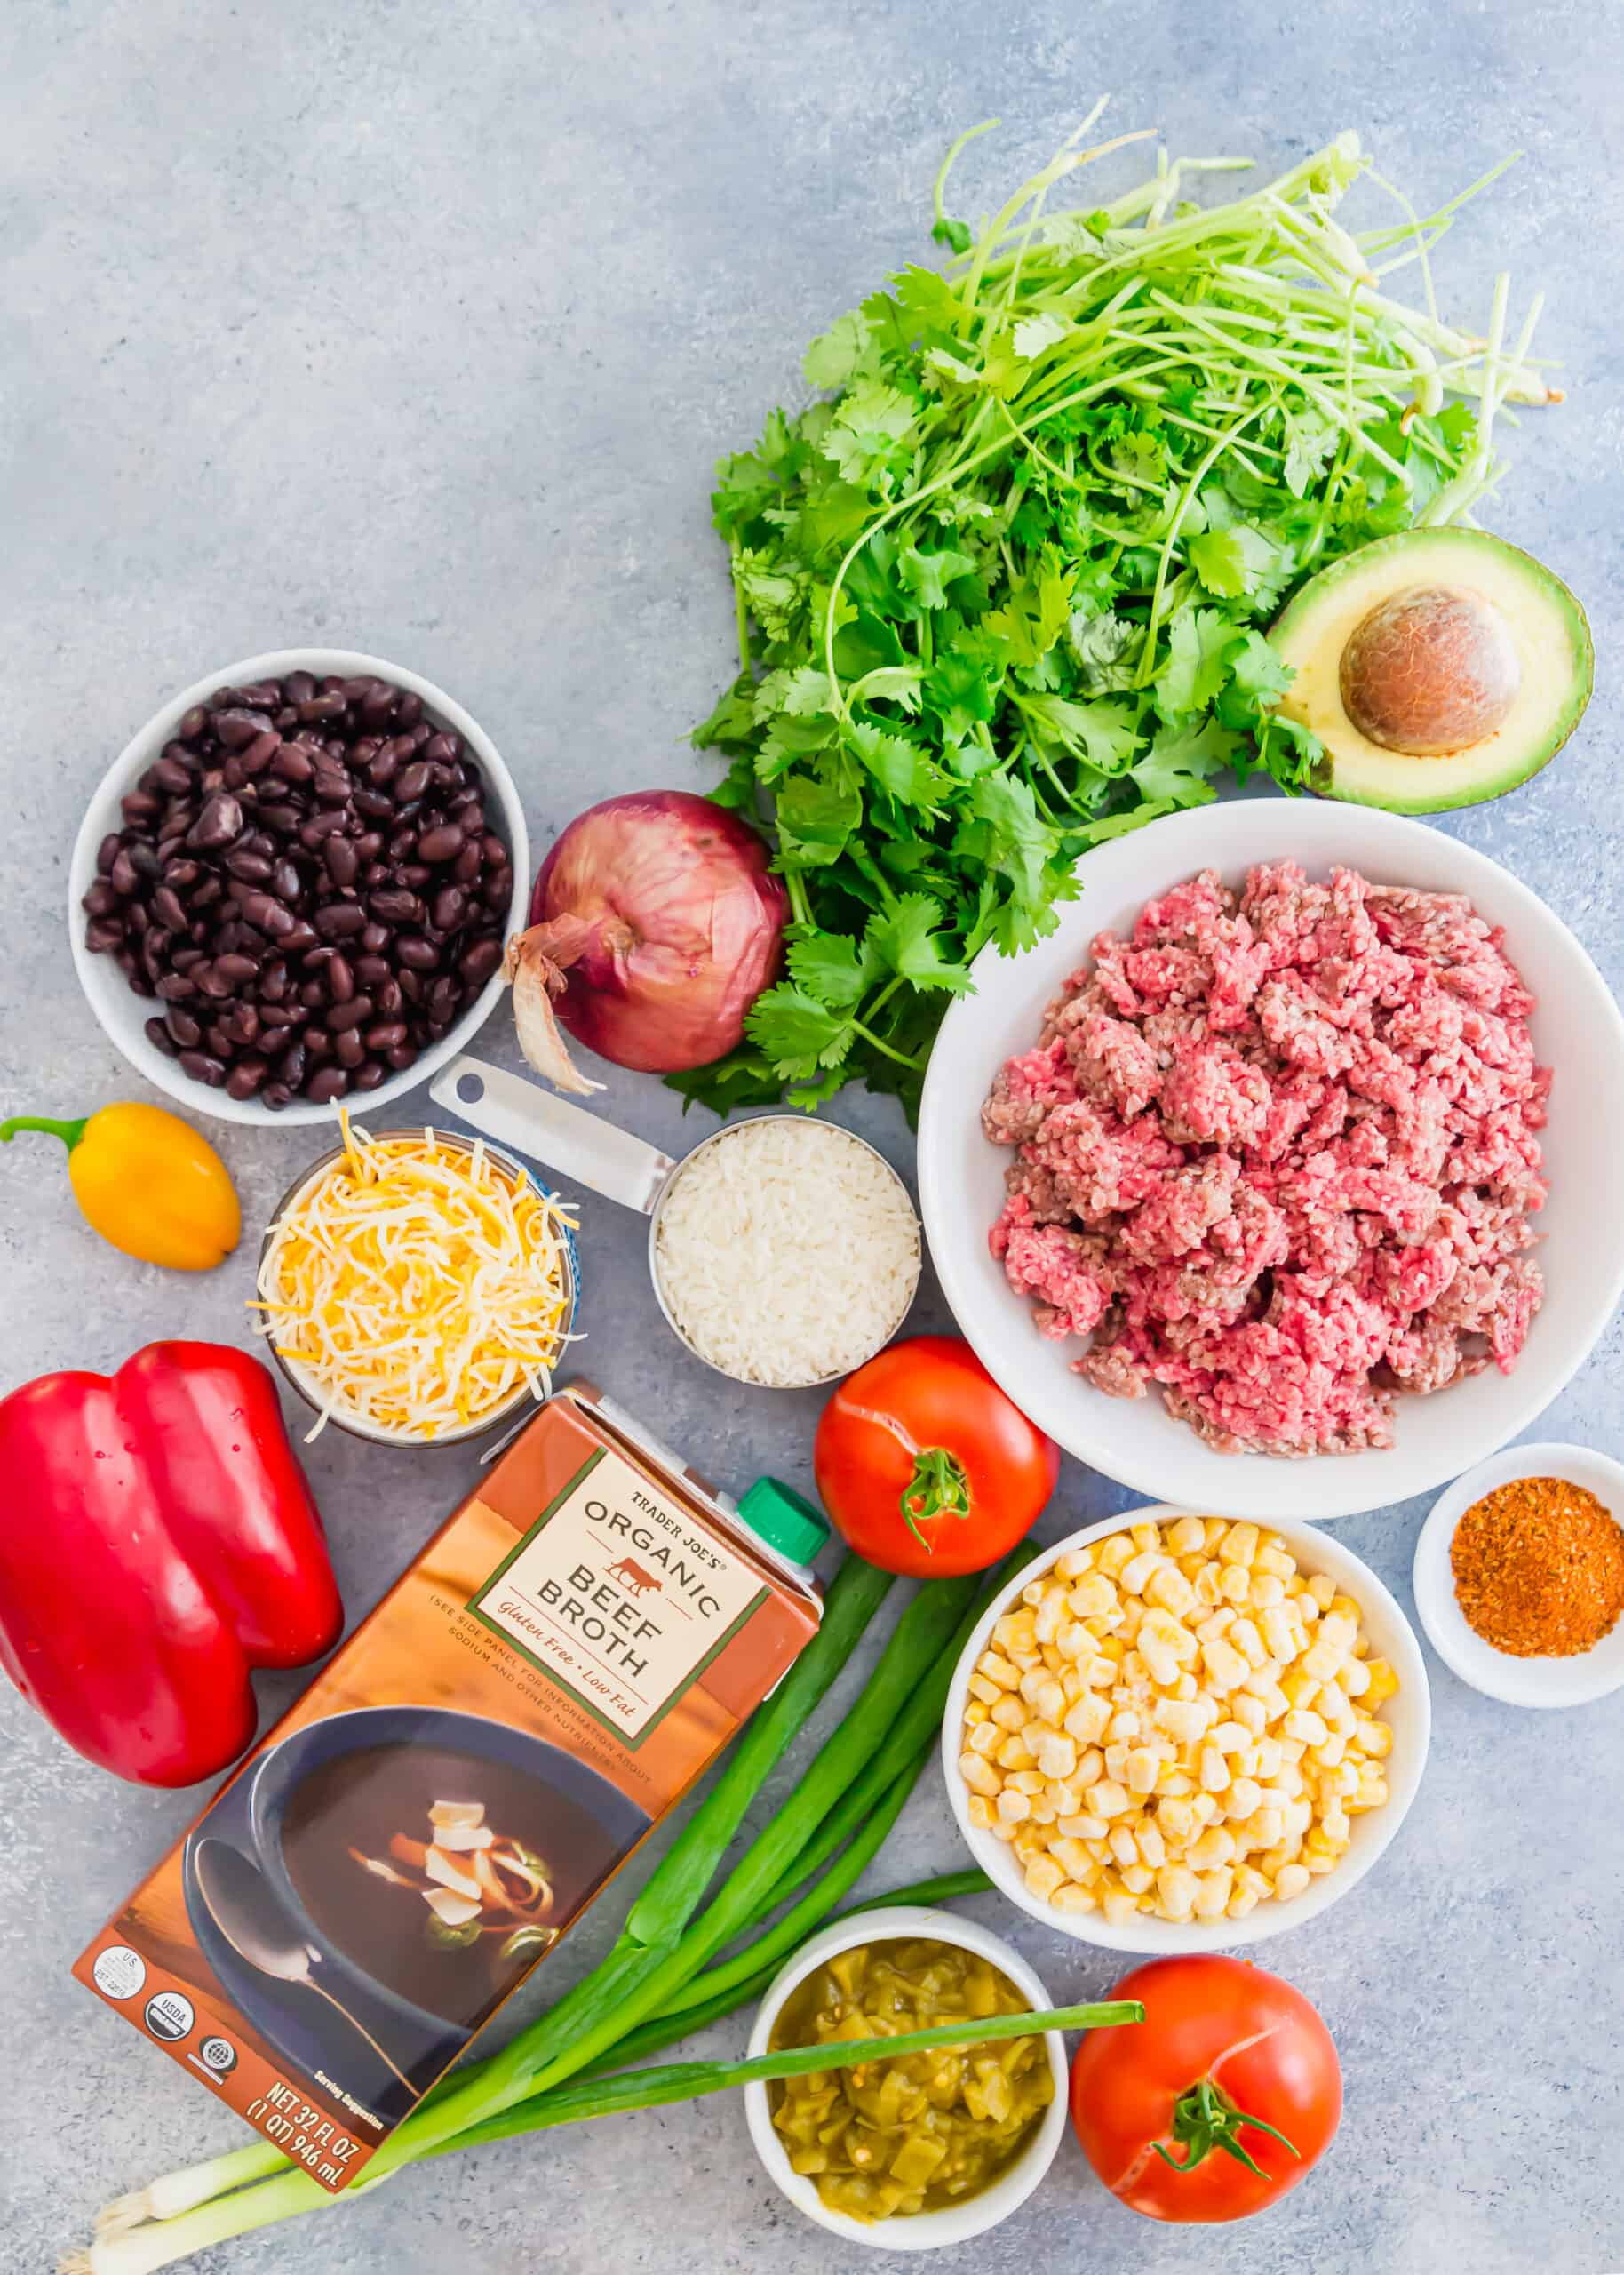 Ingredients needed for beef taco skillet, including ground beef, stock, beans, rice, and more.